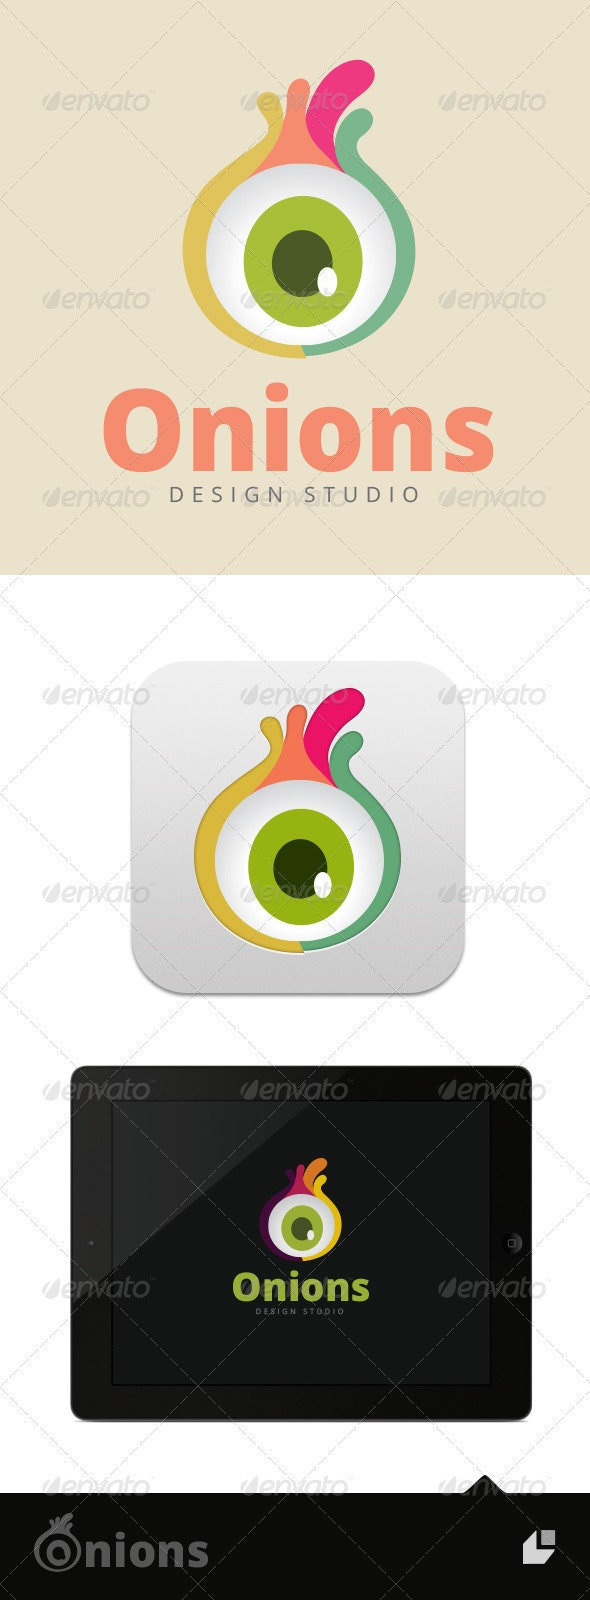 Onions Studio Logo - Vector Abstract